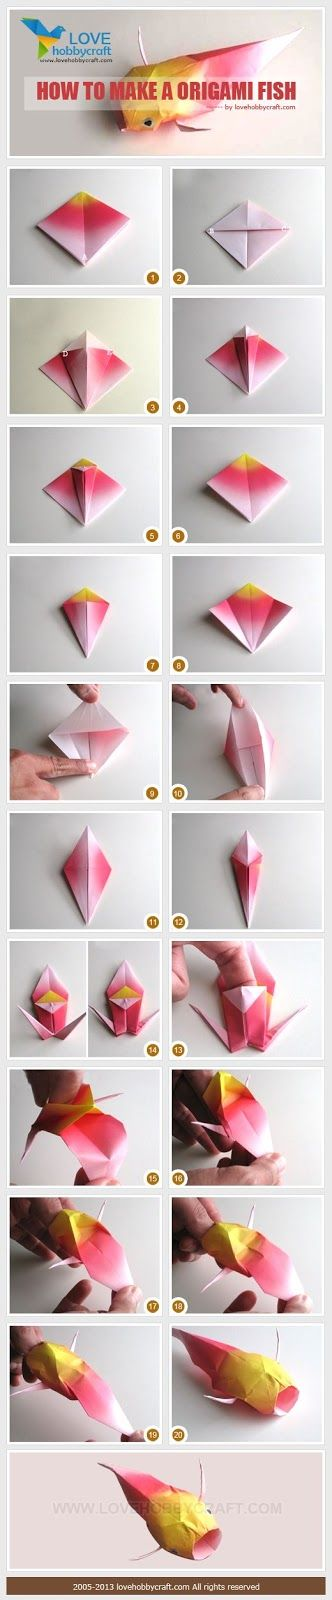 How To Make Origami Fish Crazzy Craft Favorites In 2018